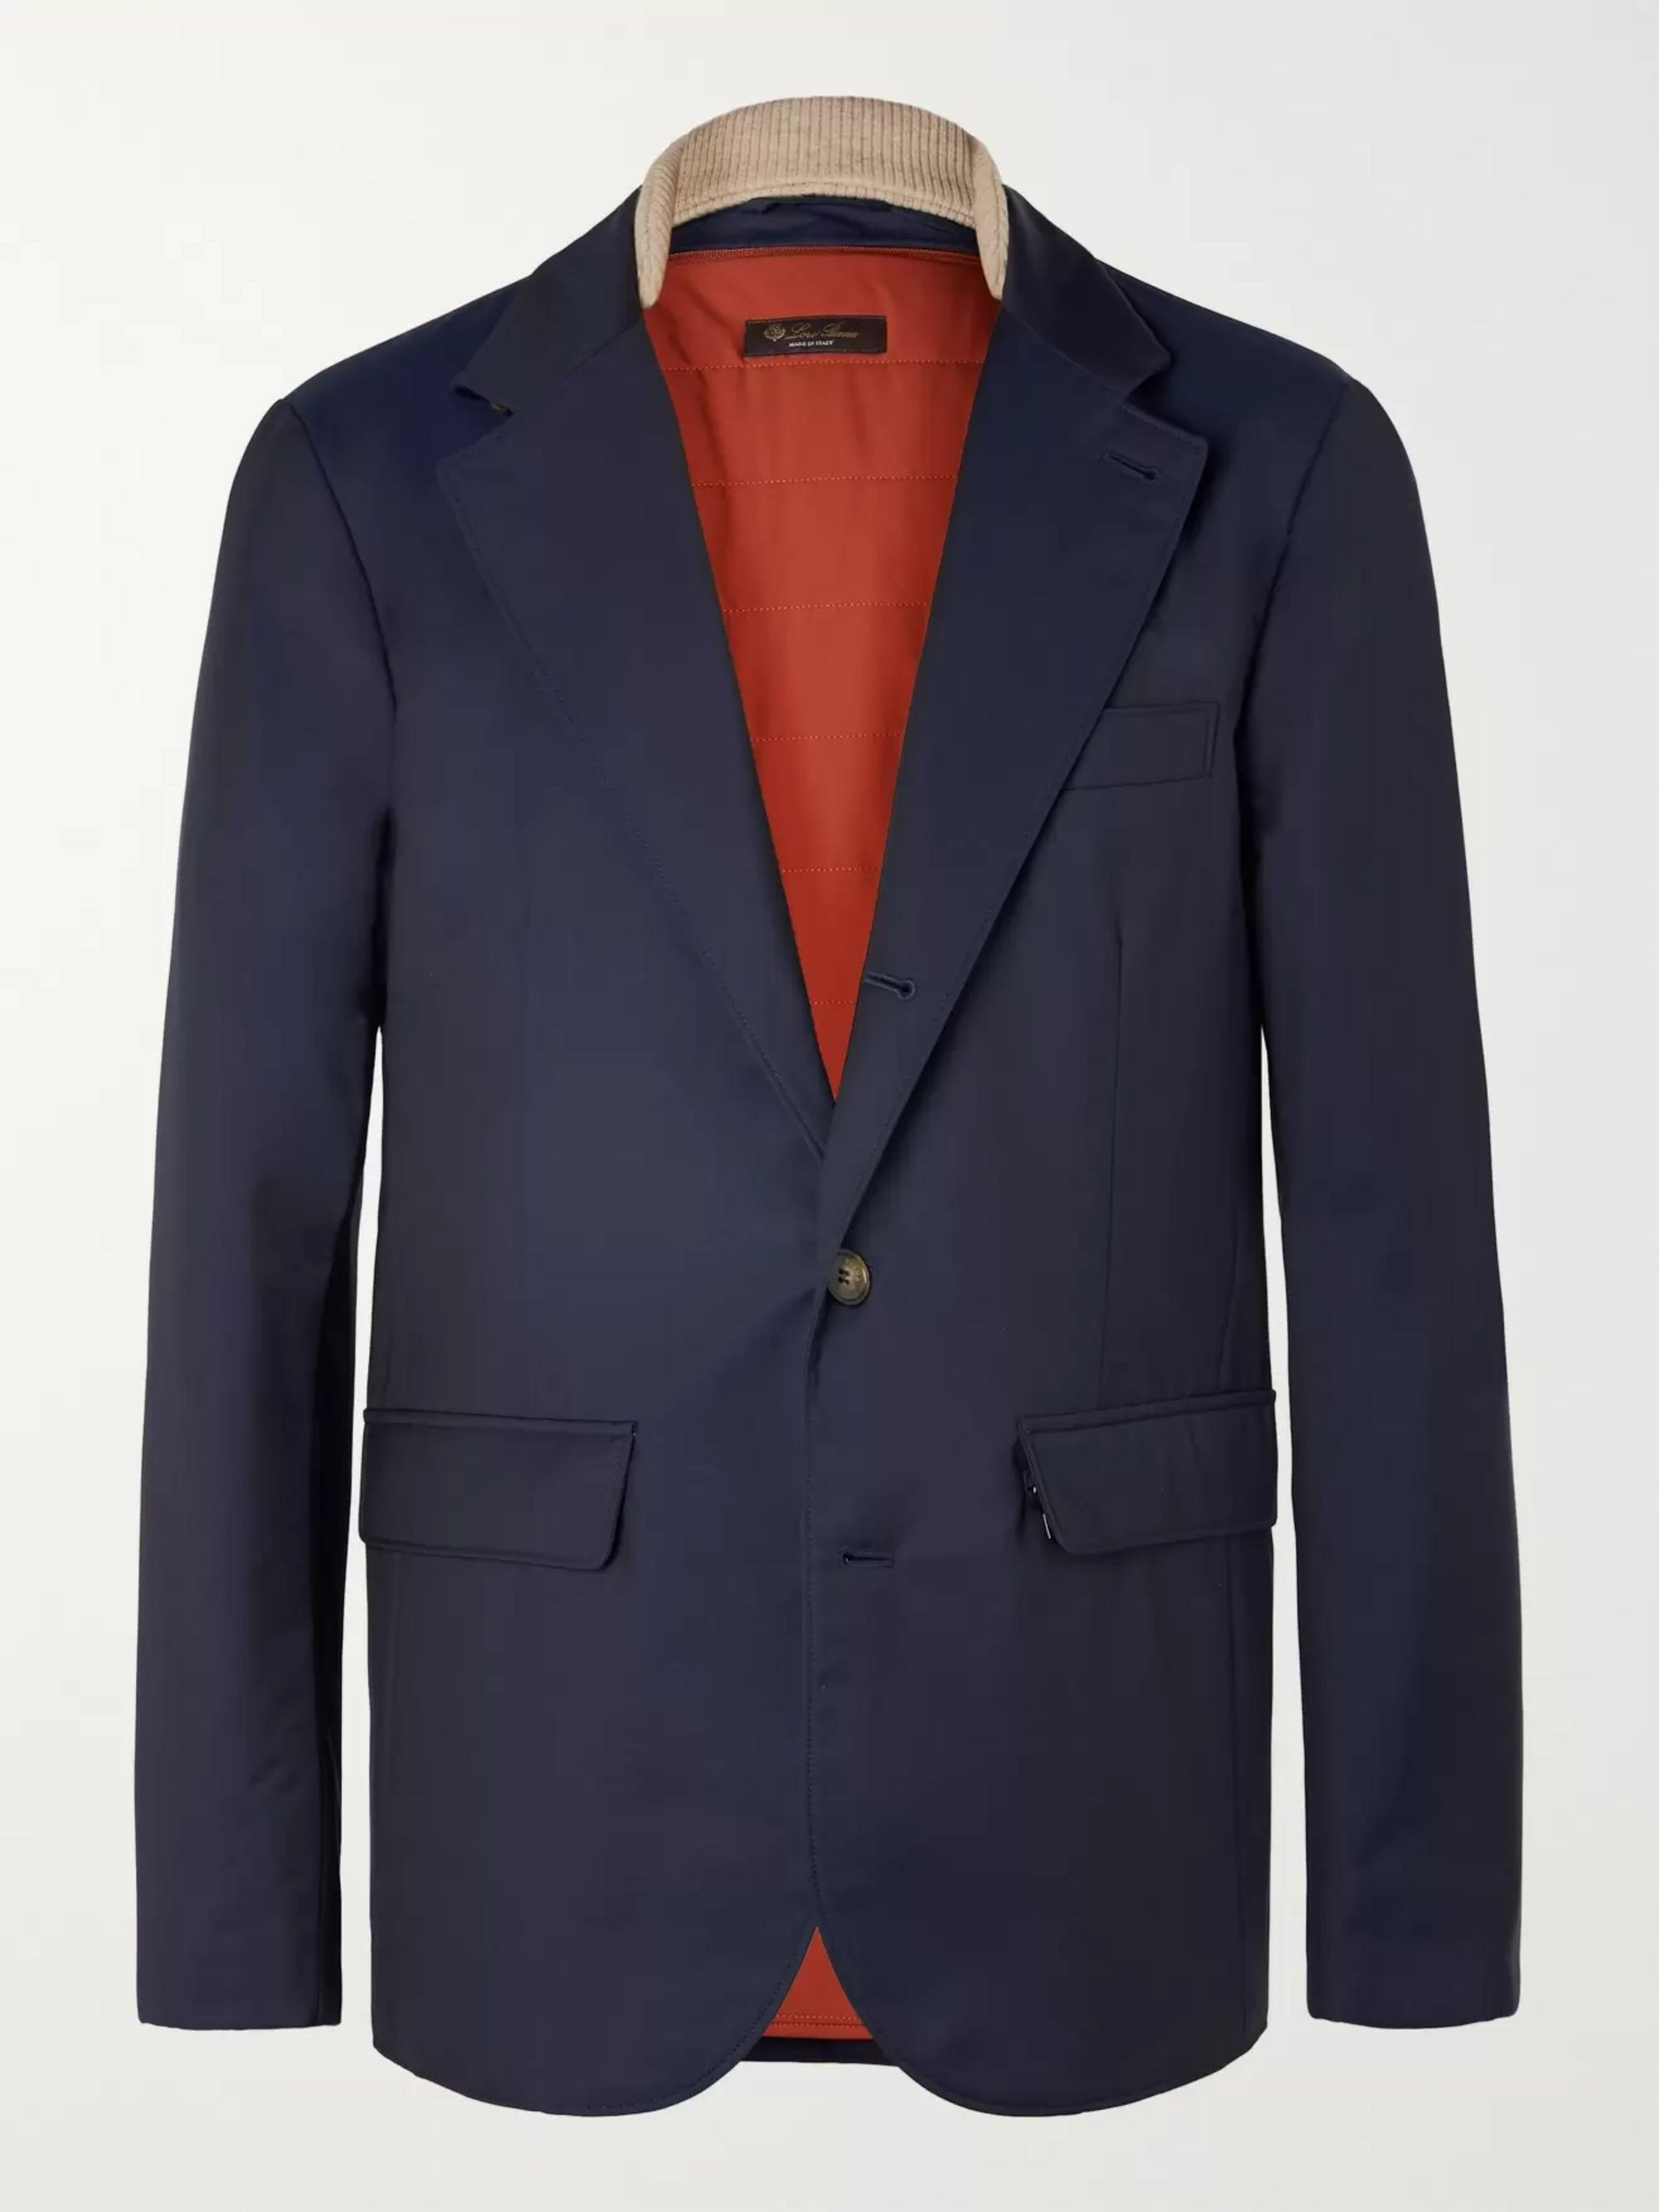 Loro Piana Navy Storm System Tech-Nylon Blazer with Detachable Padded Liner